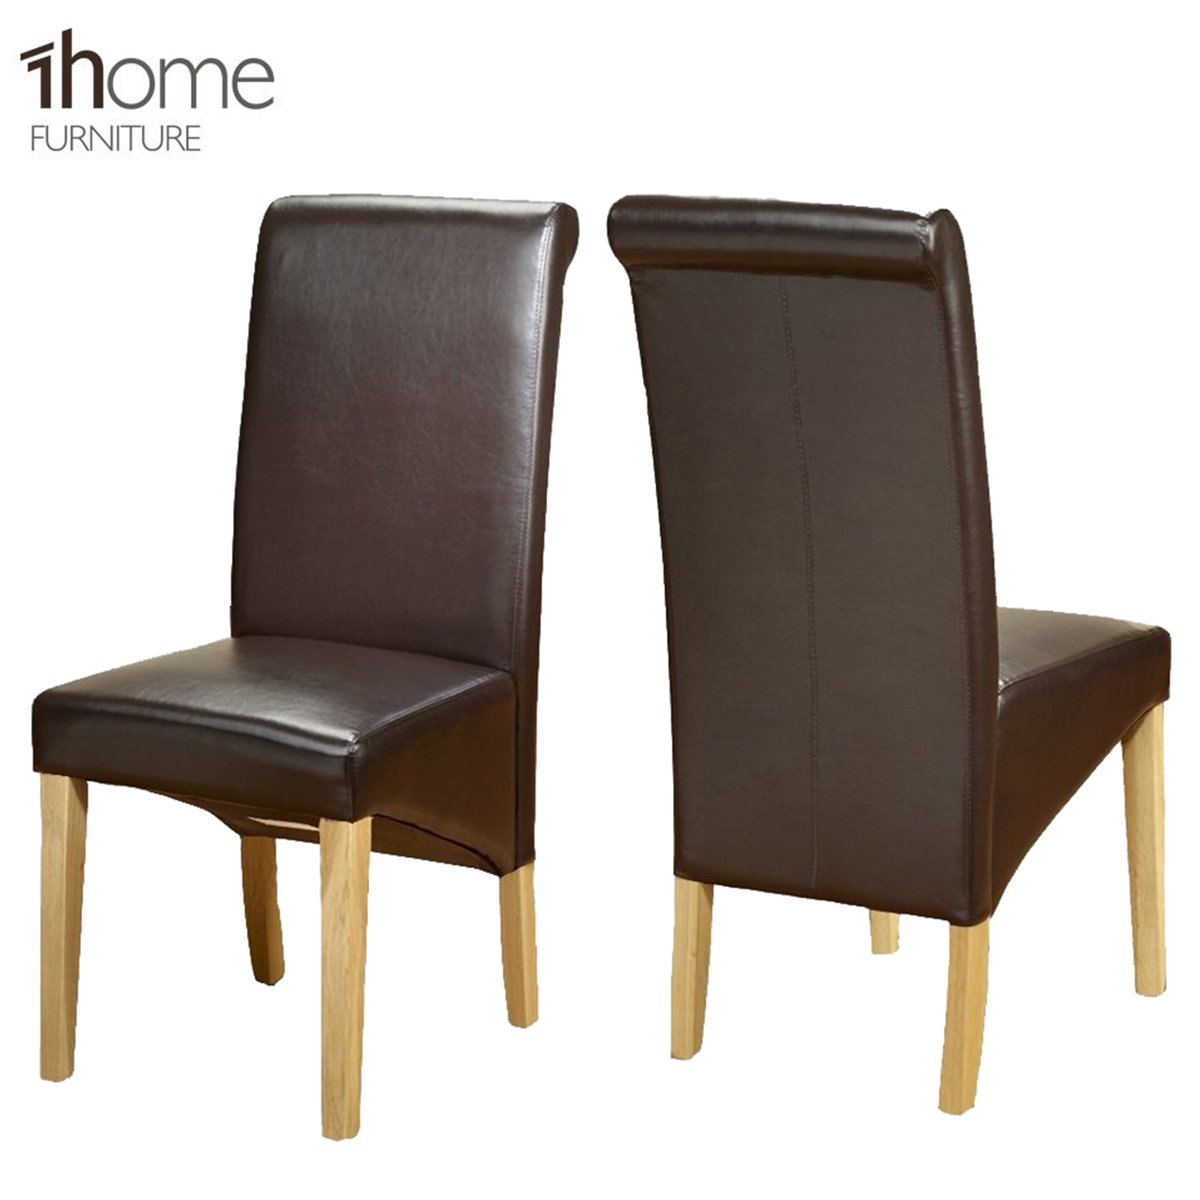 leather restaurant chairs. 2 X 1home Leather Dining Chair W Oak Finish Wood Legs Roll Top High Back Brown: Amazon.co.uk: Kitchen \u0026 Home Restaurant Chairs